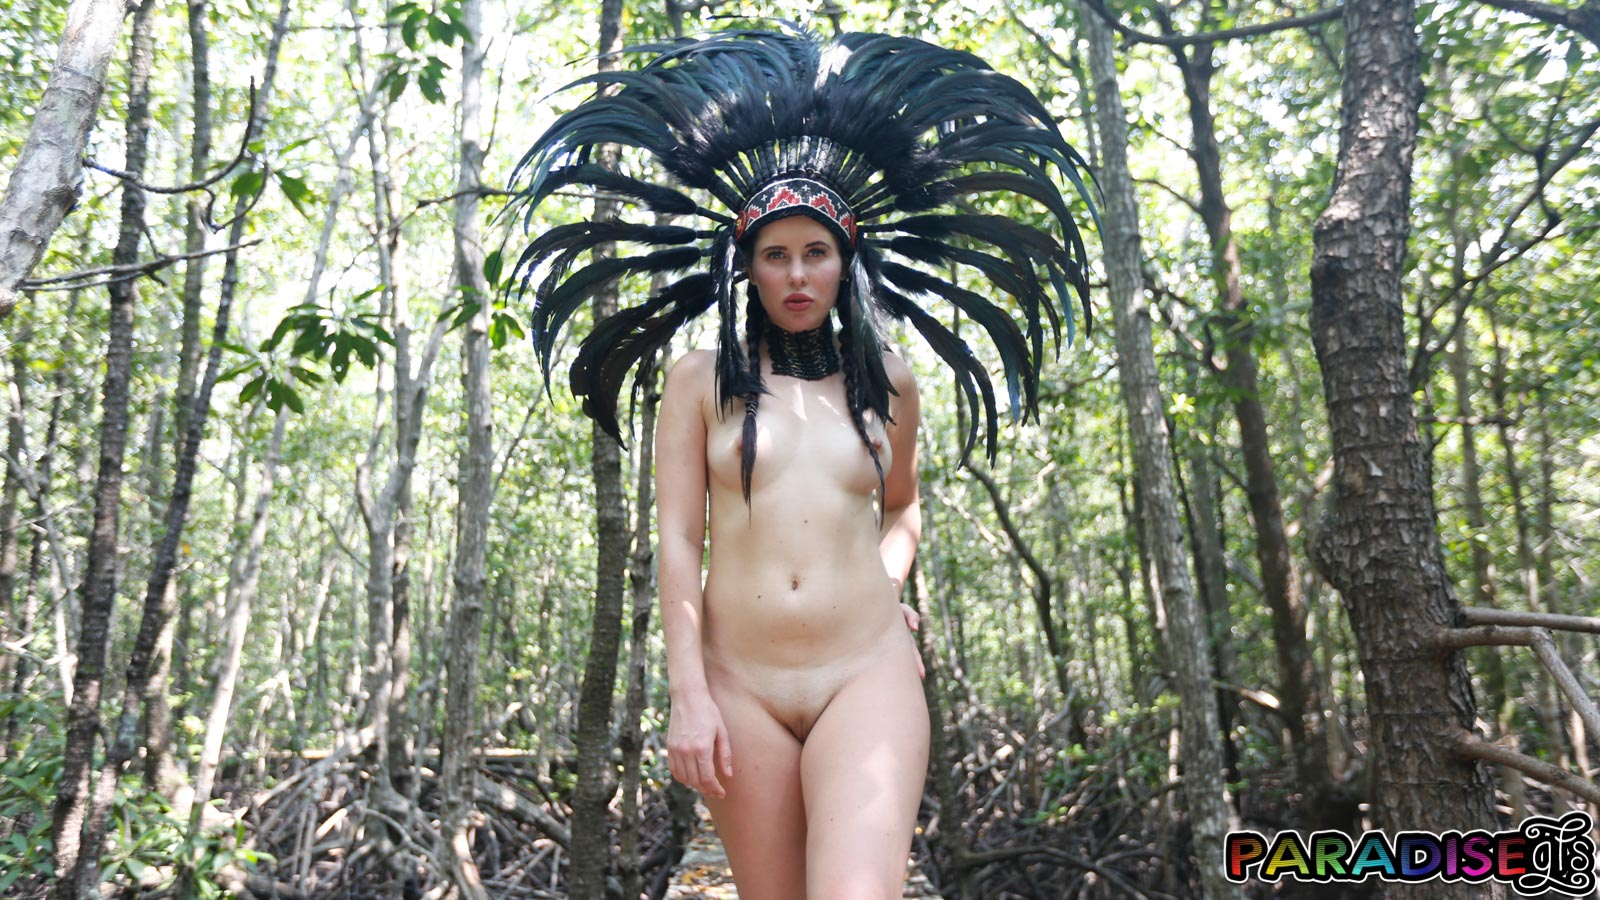 Nude nymph forest wood with